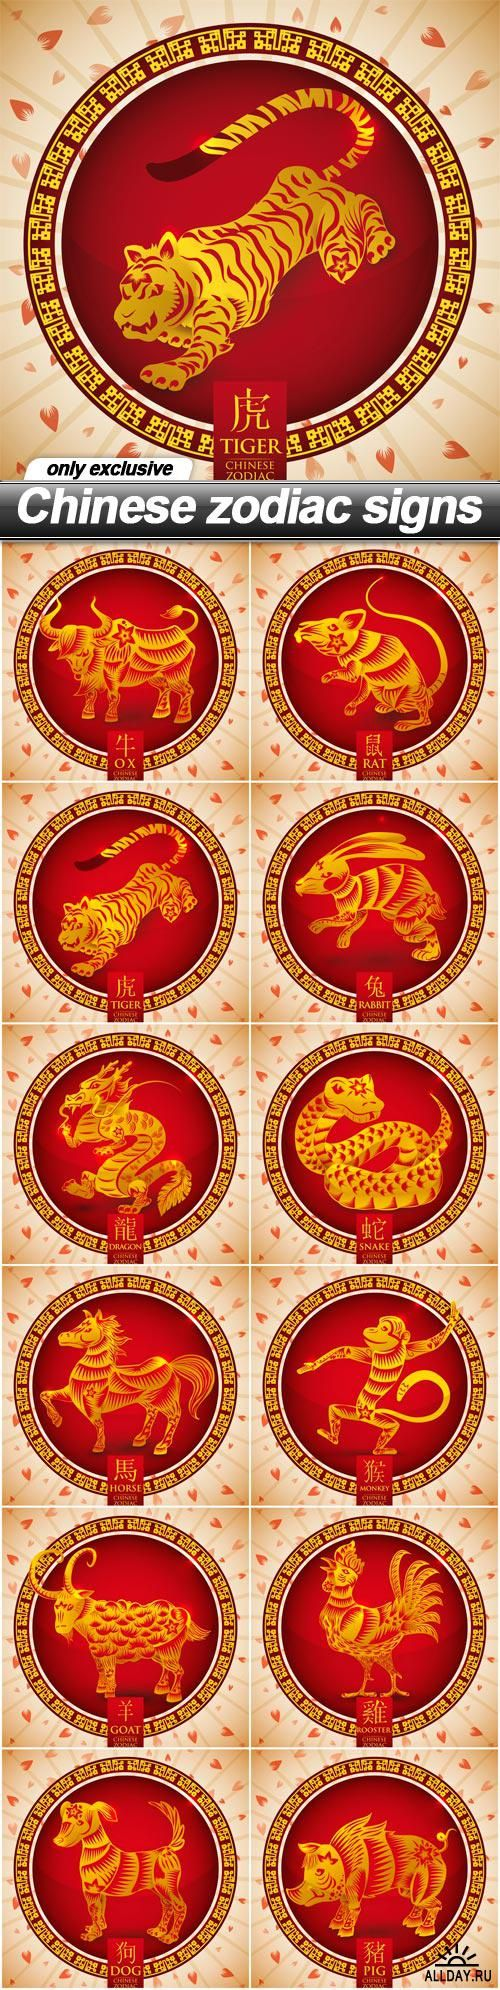 25 best ideas about chinese zodiac signs on pinterest chinese zodiac anime animals and. Black Bedroom Furniture Sets. Home Design Ideas